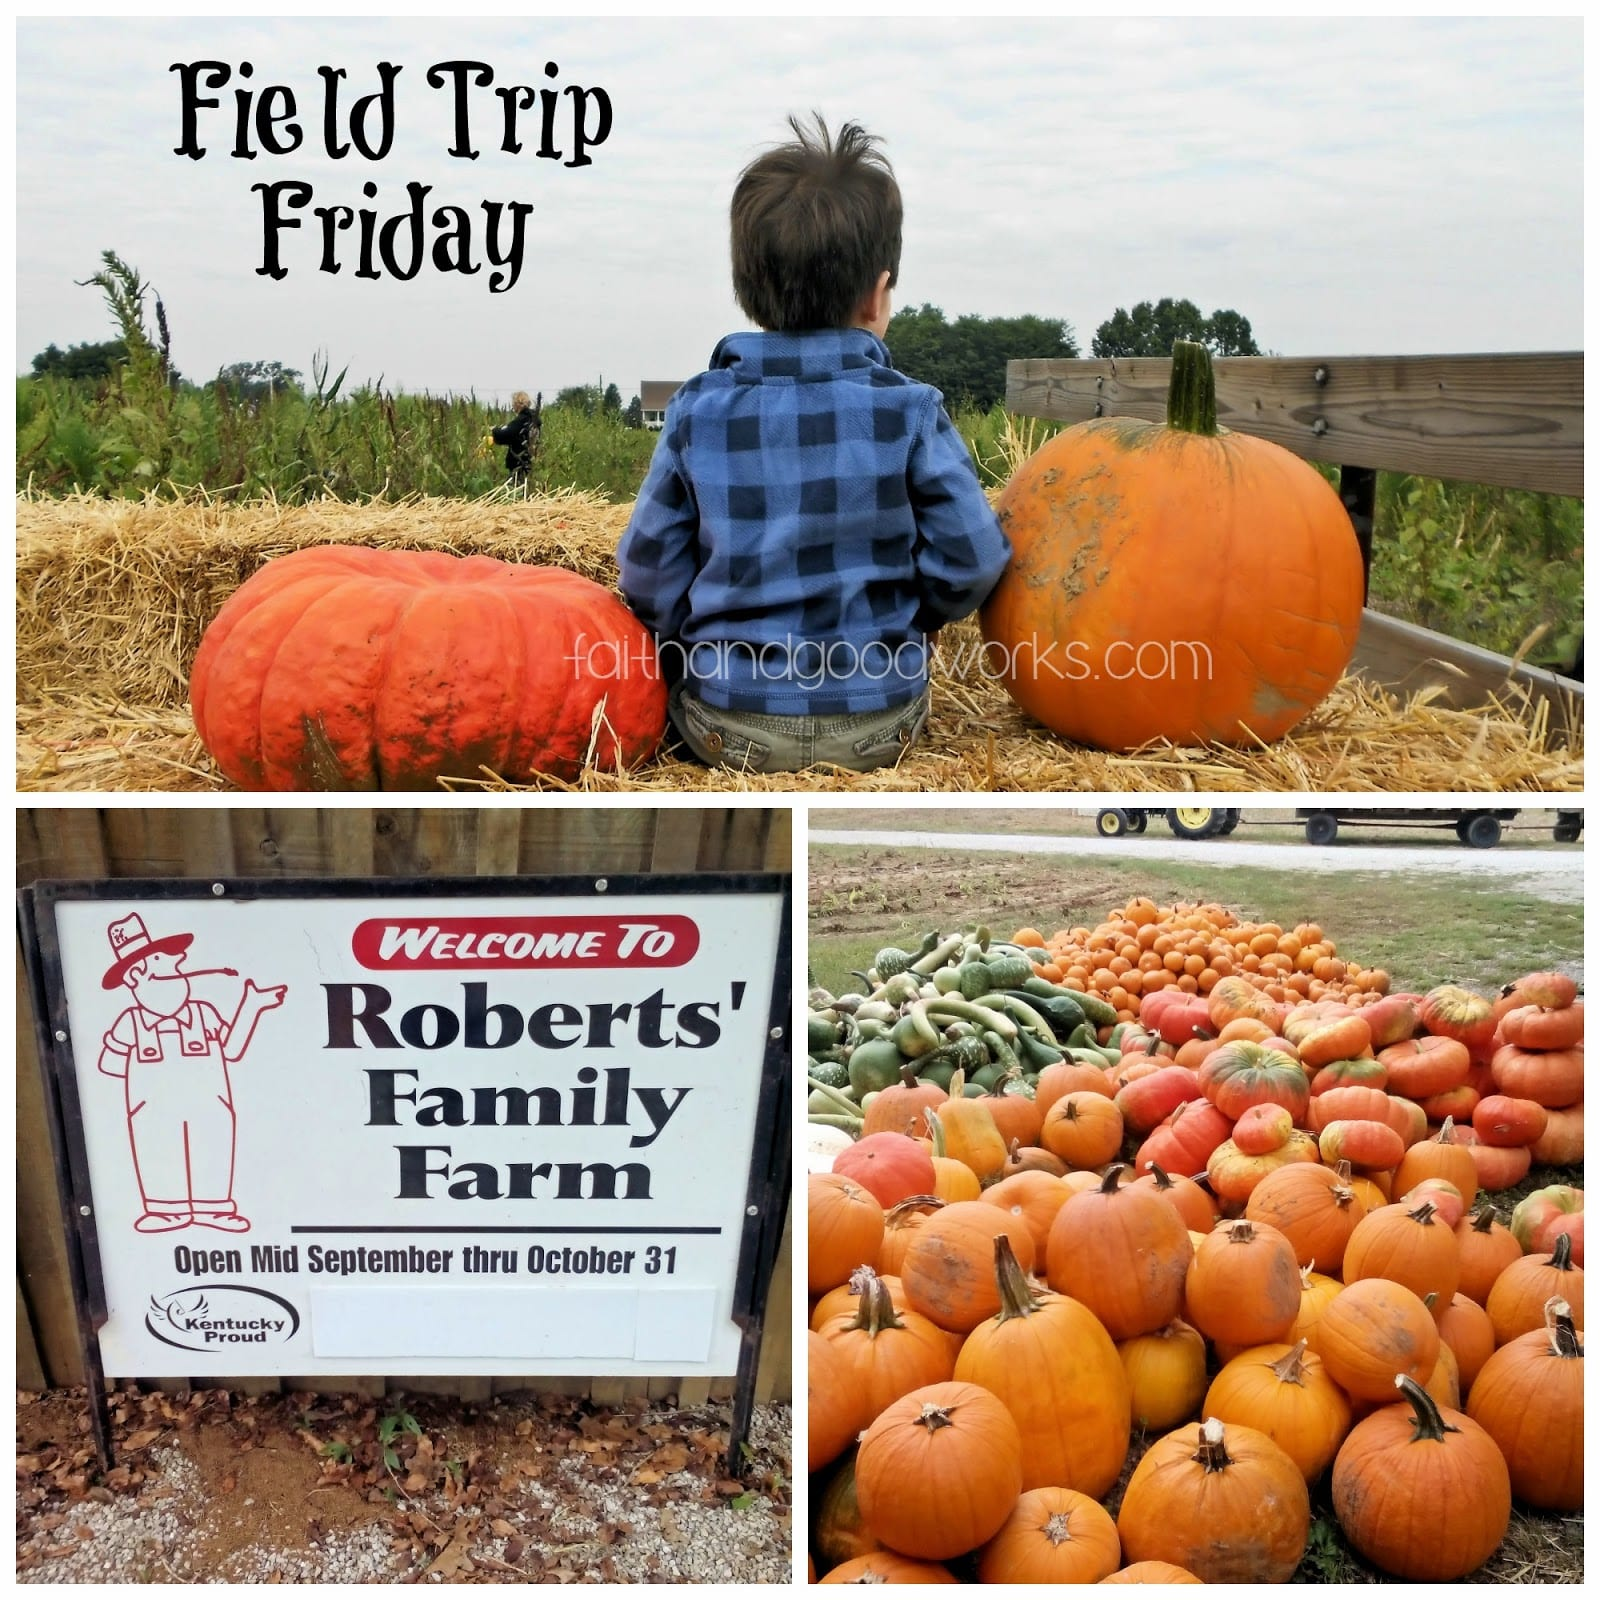 Field Trip Friday: Robert's Family Farm